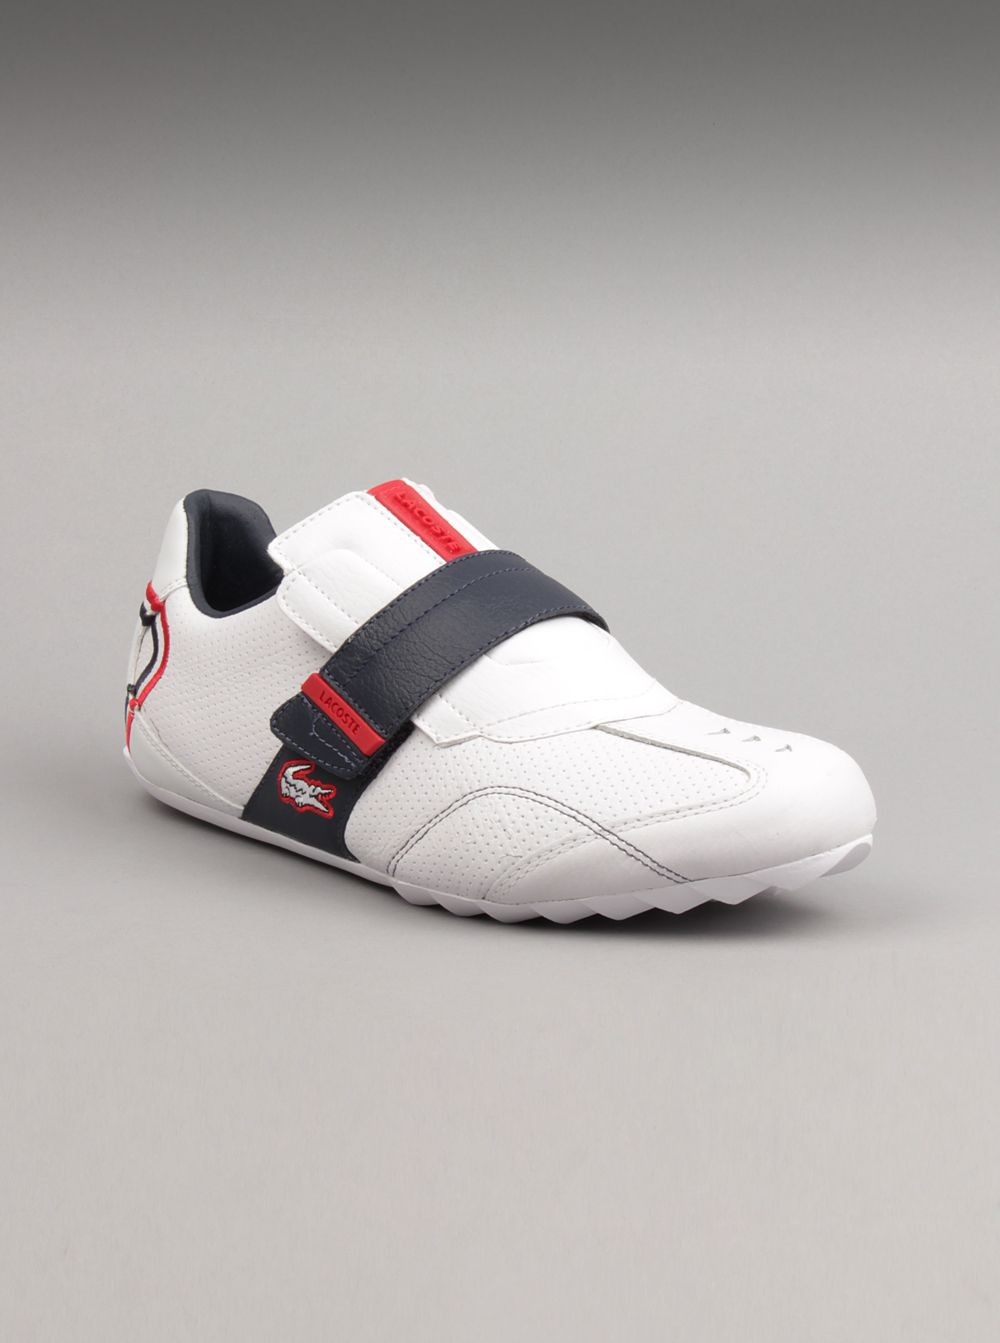 86c10d62f Lacoste Men Swerve Shoes in White and Red Sporty and sophisticated.This  style features a suede and synthetic leather upper with intricate stitching  detail